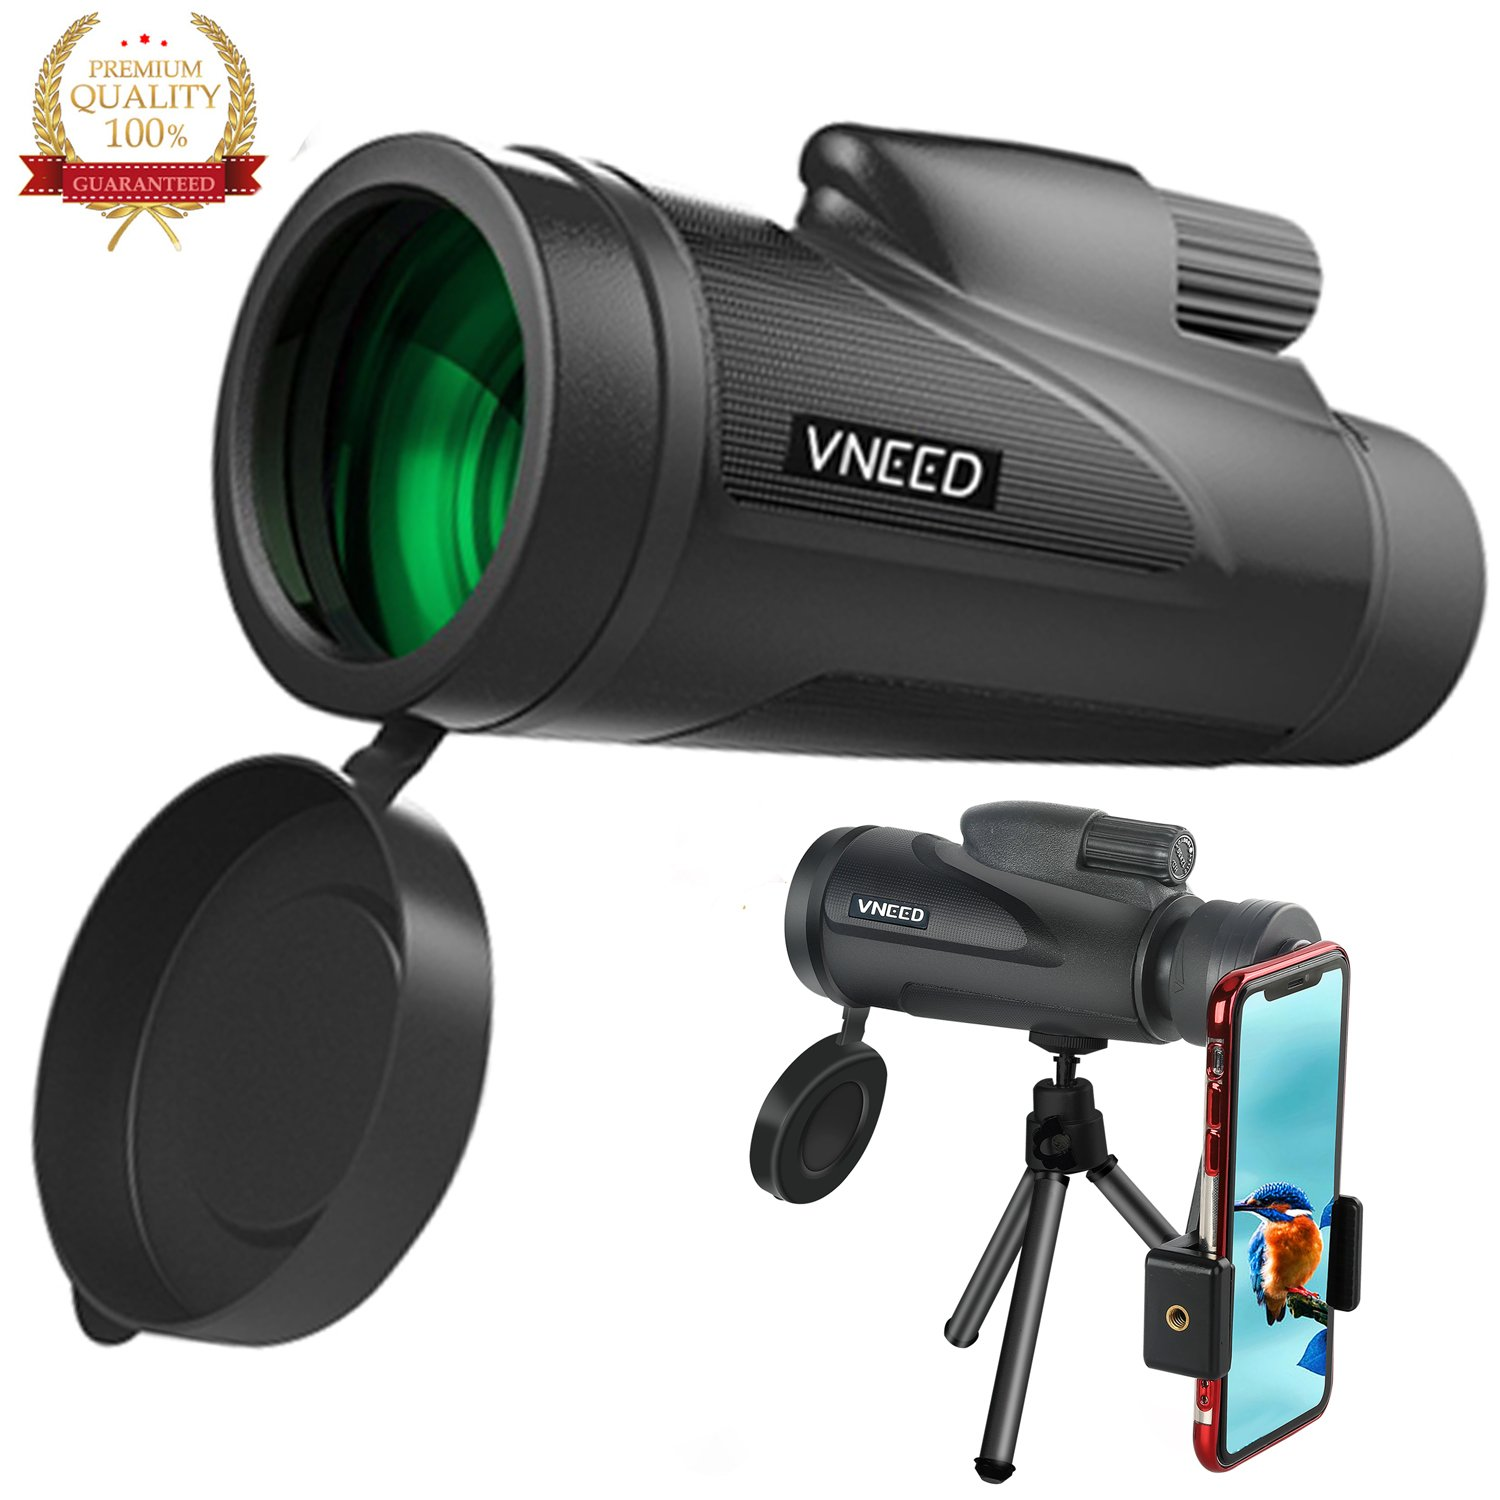 Monocular Telescope for phone 12X50 High-powered BAK4 Prism Low Night Vision Waterproof Fog-proof Smartphone Adapter Tripod Holder for Bird Watching Hunting Camping Hiking Travelling Wildlife (B)